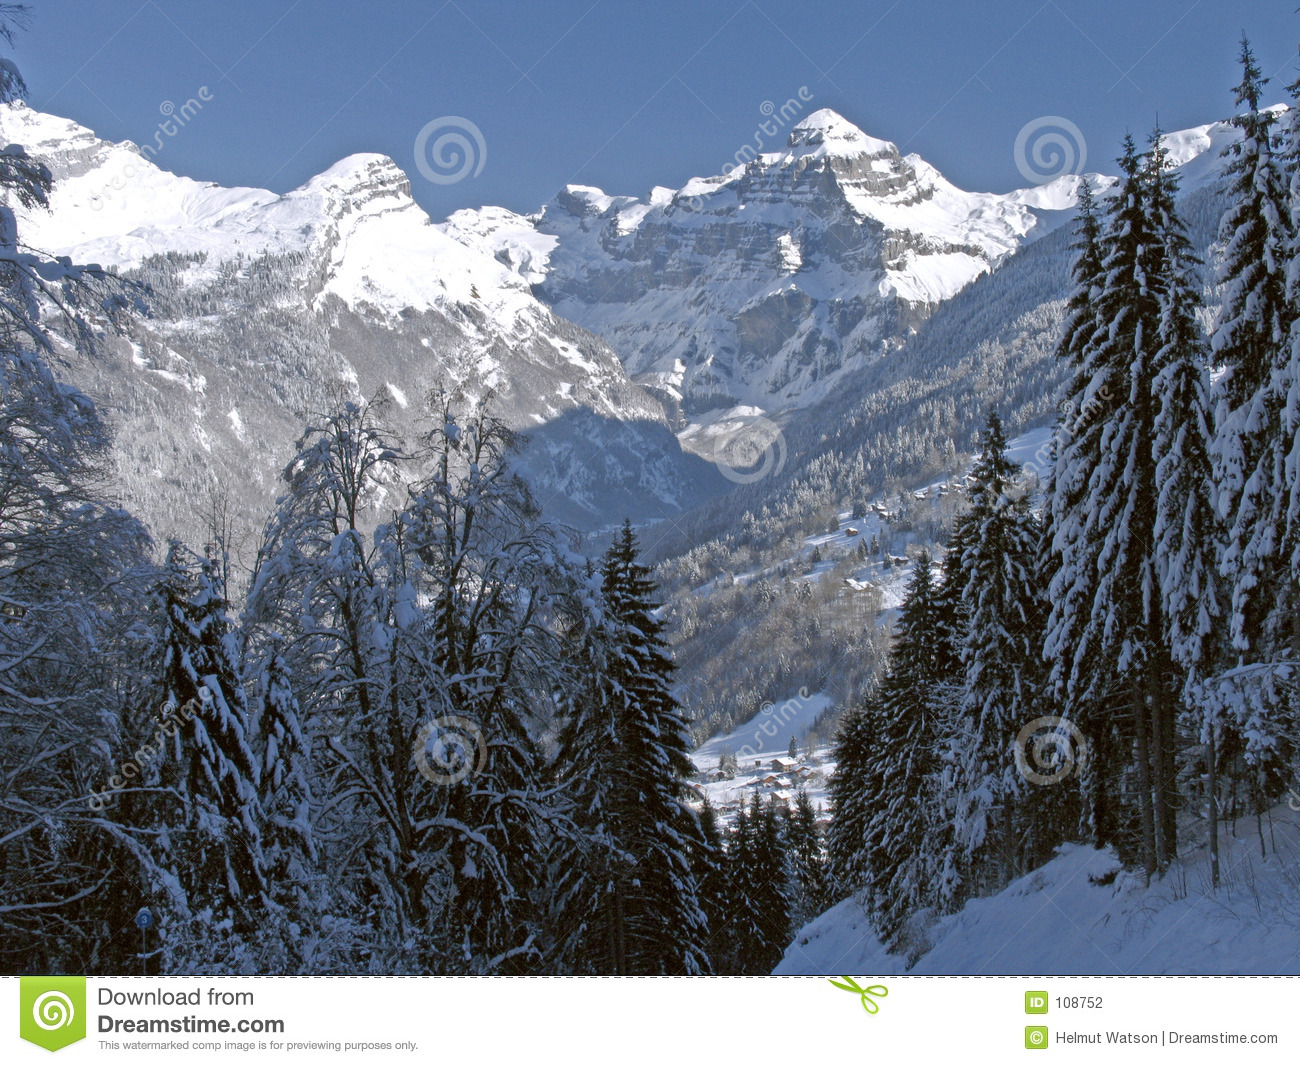 Download Flaine - Tree-lined Valley With Snow-capped Peak Stock Photo - Image of france, valley: 108752